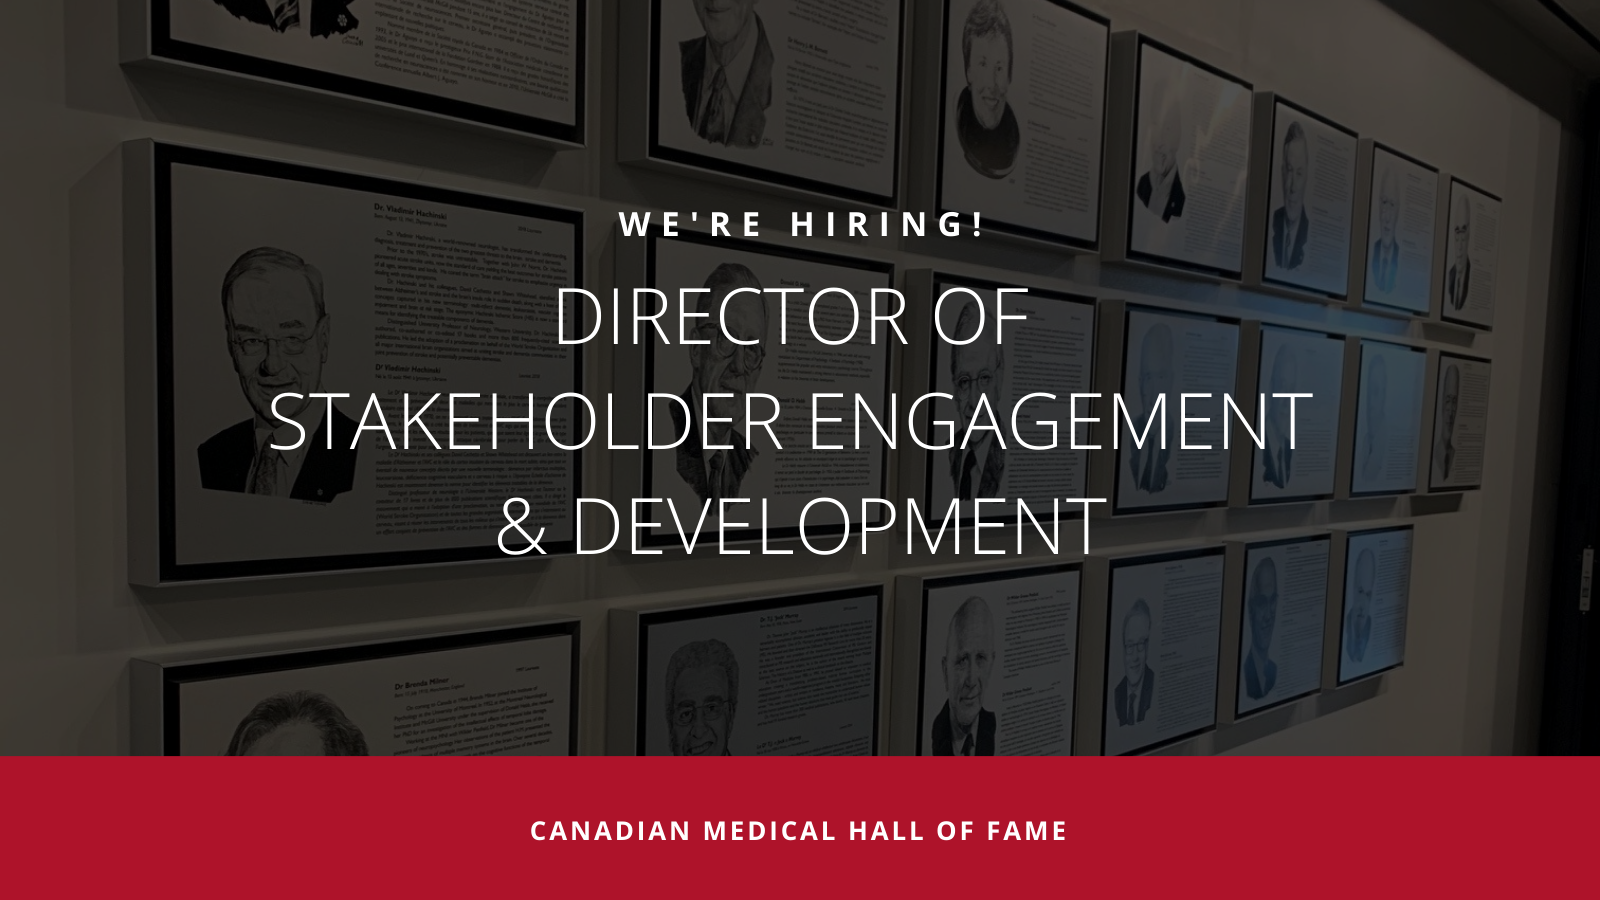 Director of Stakeholder Engagement and Development